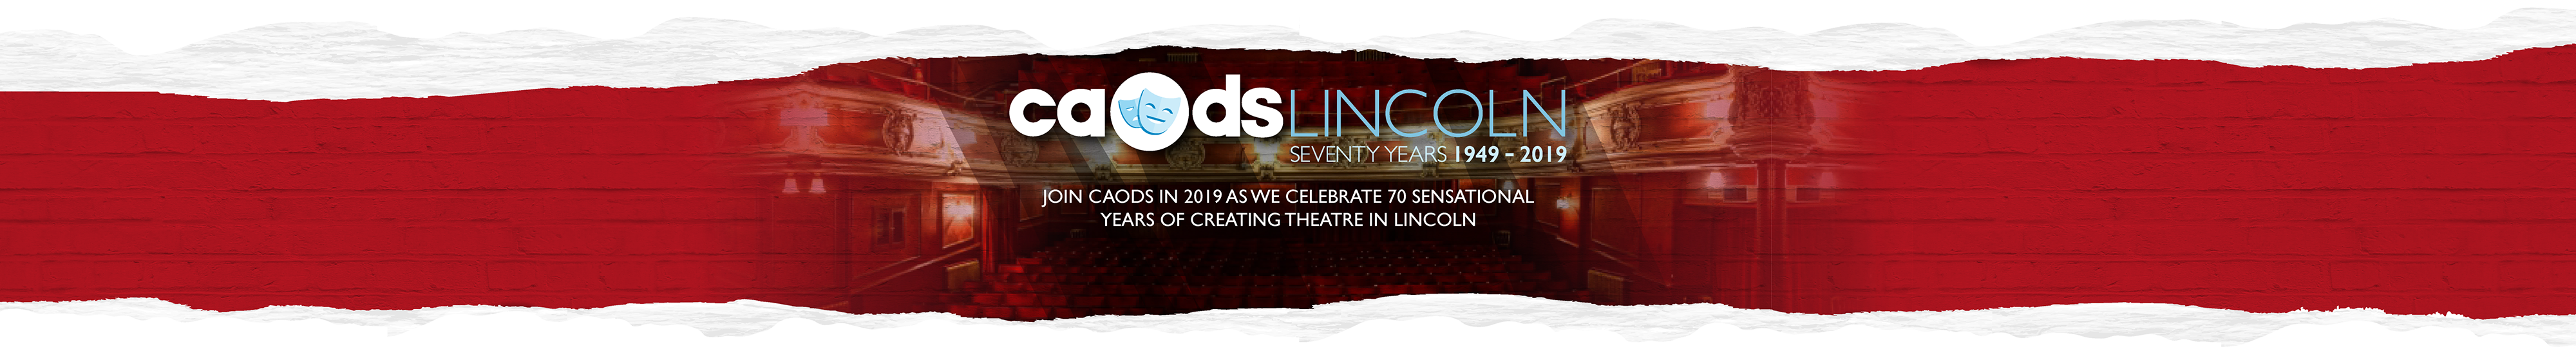 CAODS Lincoln - Celebrating 70 sensational years in 2019